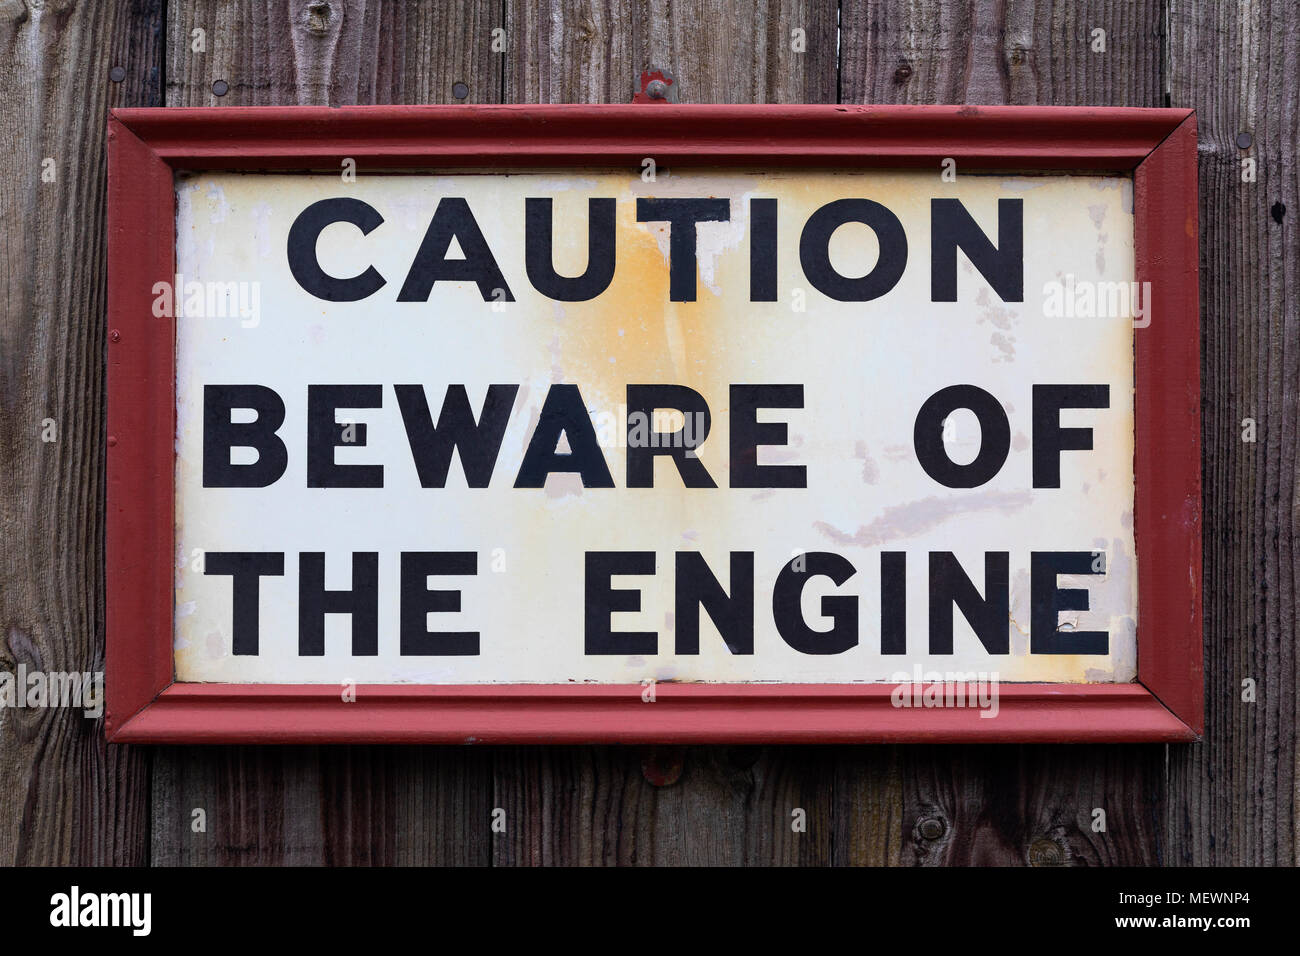 Warning sign in a good shunting yard - Beware of the Engine. - Stock Image